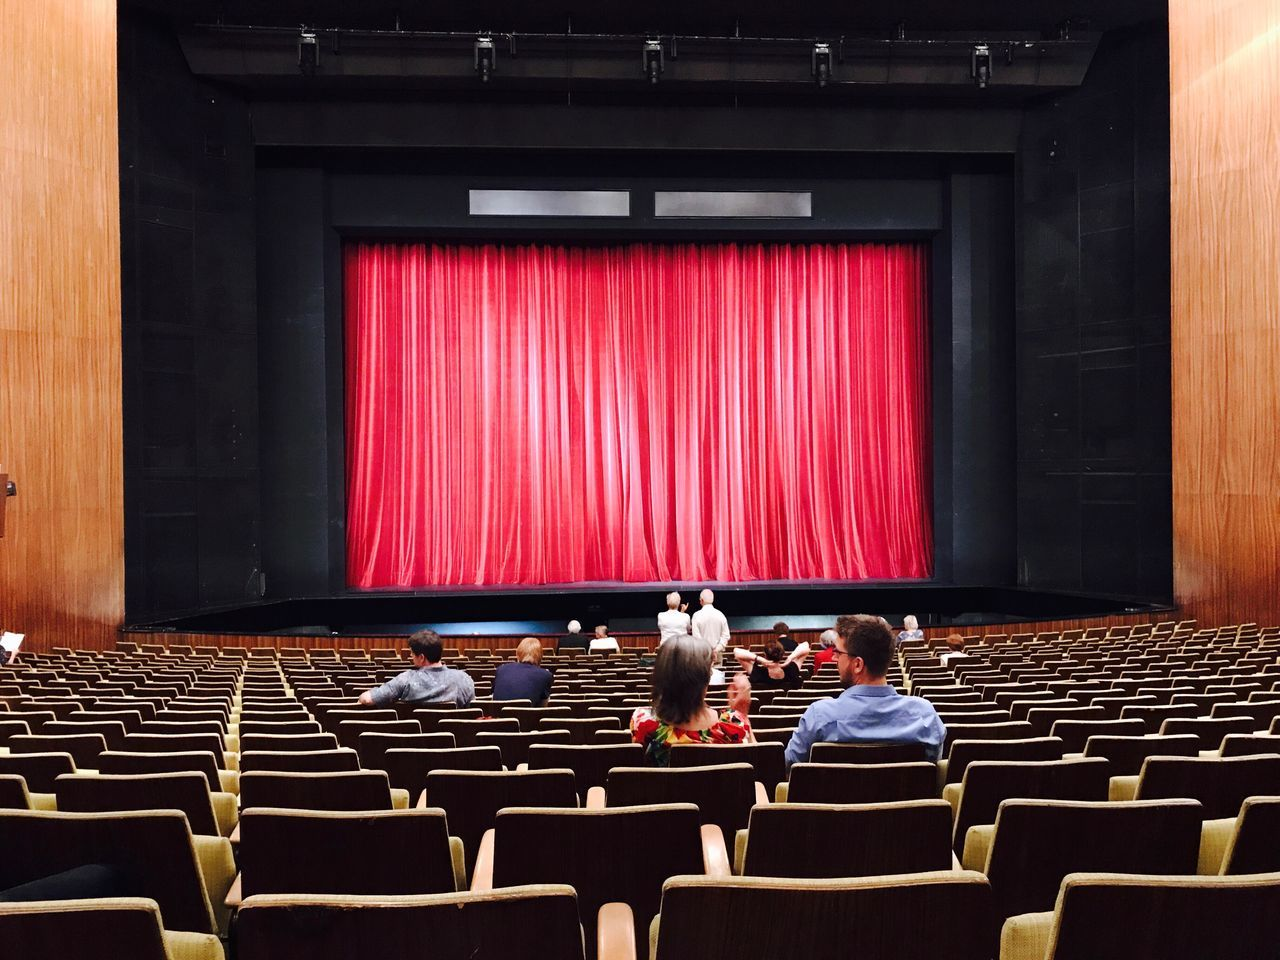 Curtain Preparation  Chair Stage - Performance Space Indoors  Performance Real People Arts Culture And Entertainment Performing Arts Event Red Seat Men Audience Sitting Togetherness Auditorium Day Teamwork Film Industry People